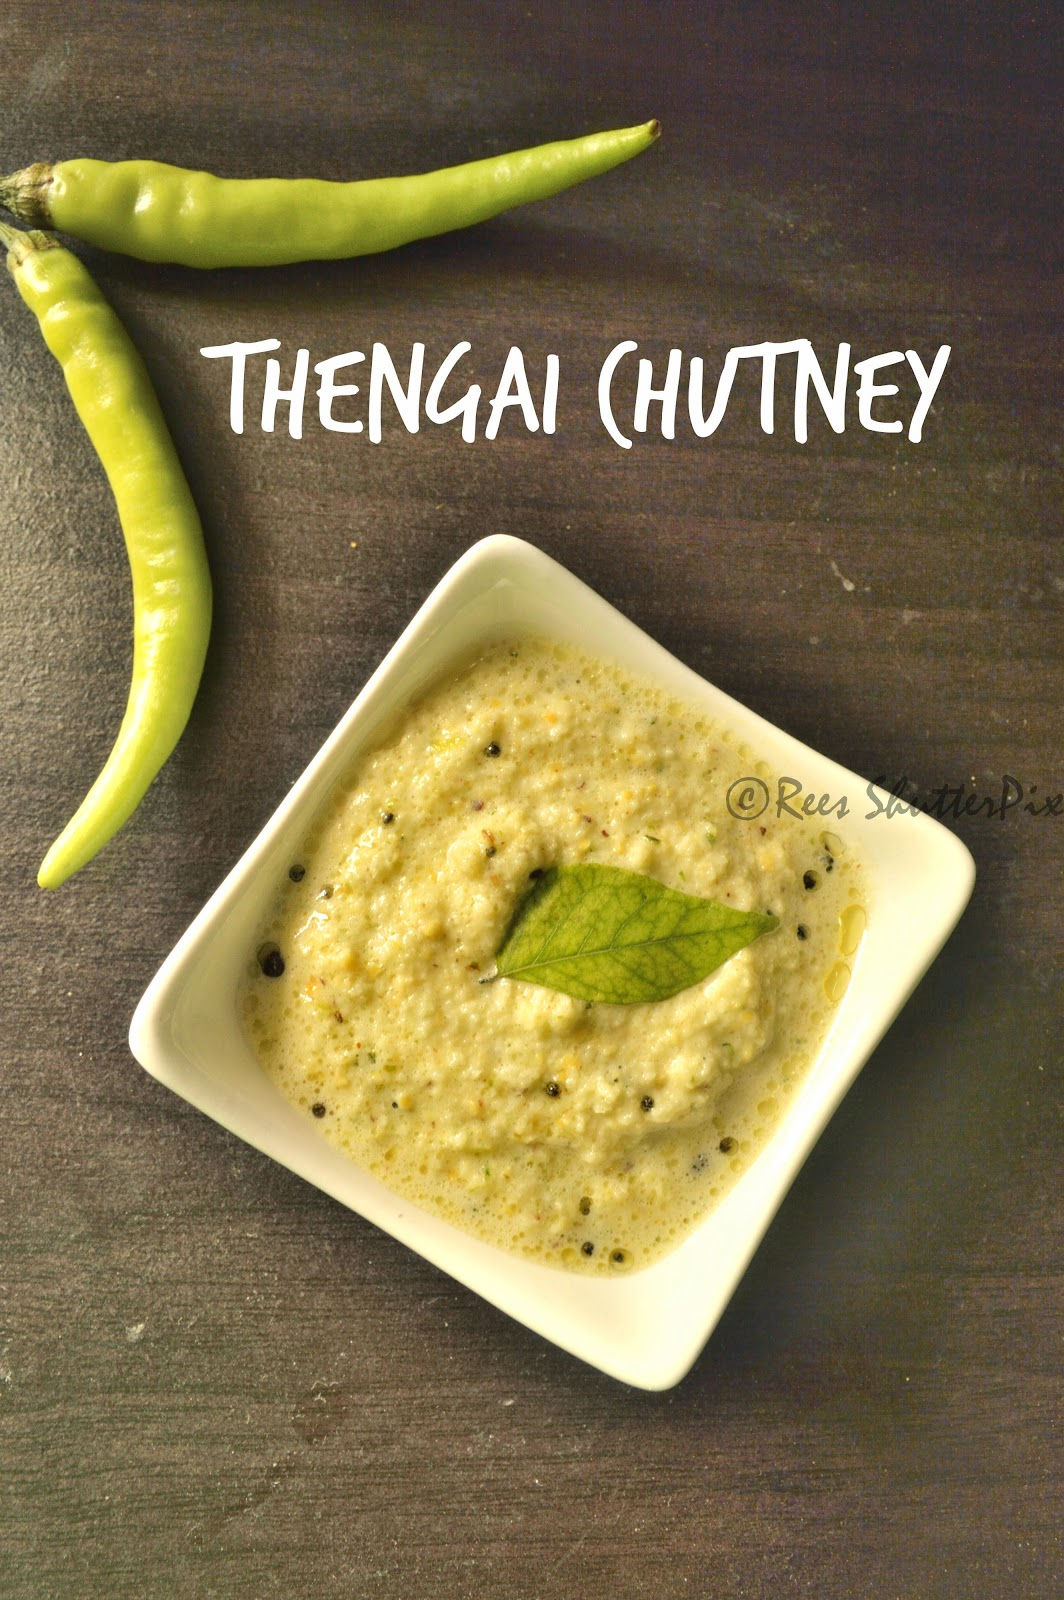 coconut chutney recipe, thengai chutney recipe, easy chutney recipe